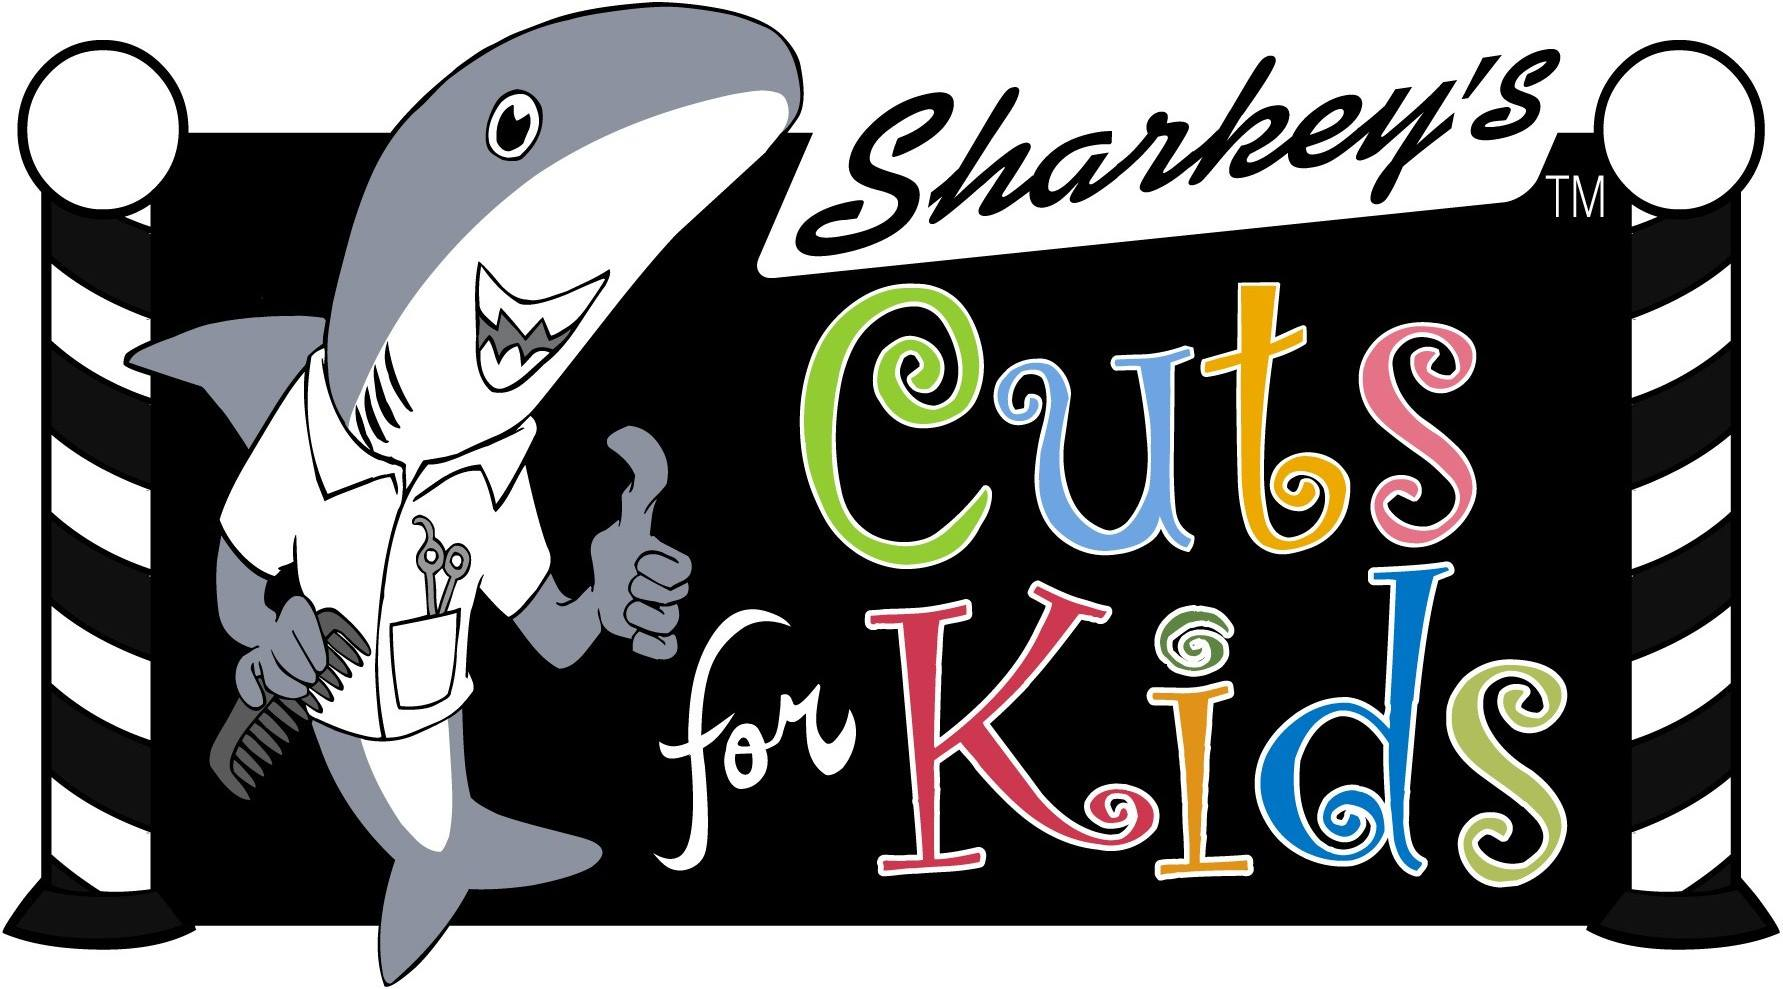 Best of Doral™ Barber/Beauty Salon/Spa introduces Sharkey's Cuts for Kids.